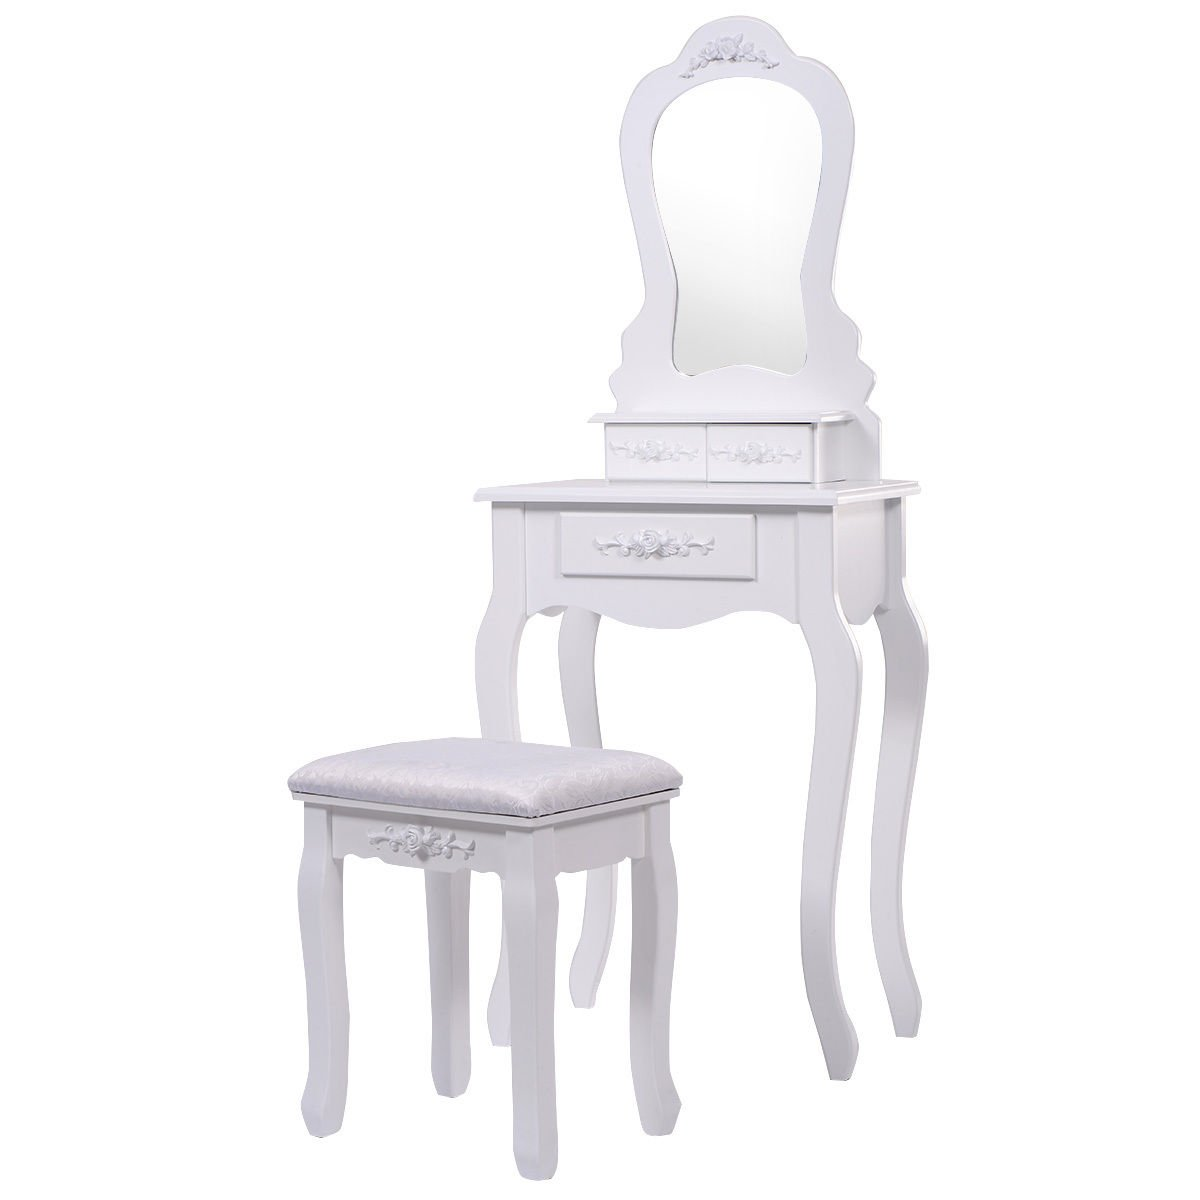 KCHEX>White Vanity Jewelry Makeup Dressing Table Set W/Stool Drawer Mirror Wood>Every Girl Wishes to Have a Glamorous Dressing Table with All her Jewelry and Make up. Don't Hesitate, let us Come Your